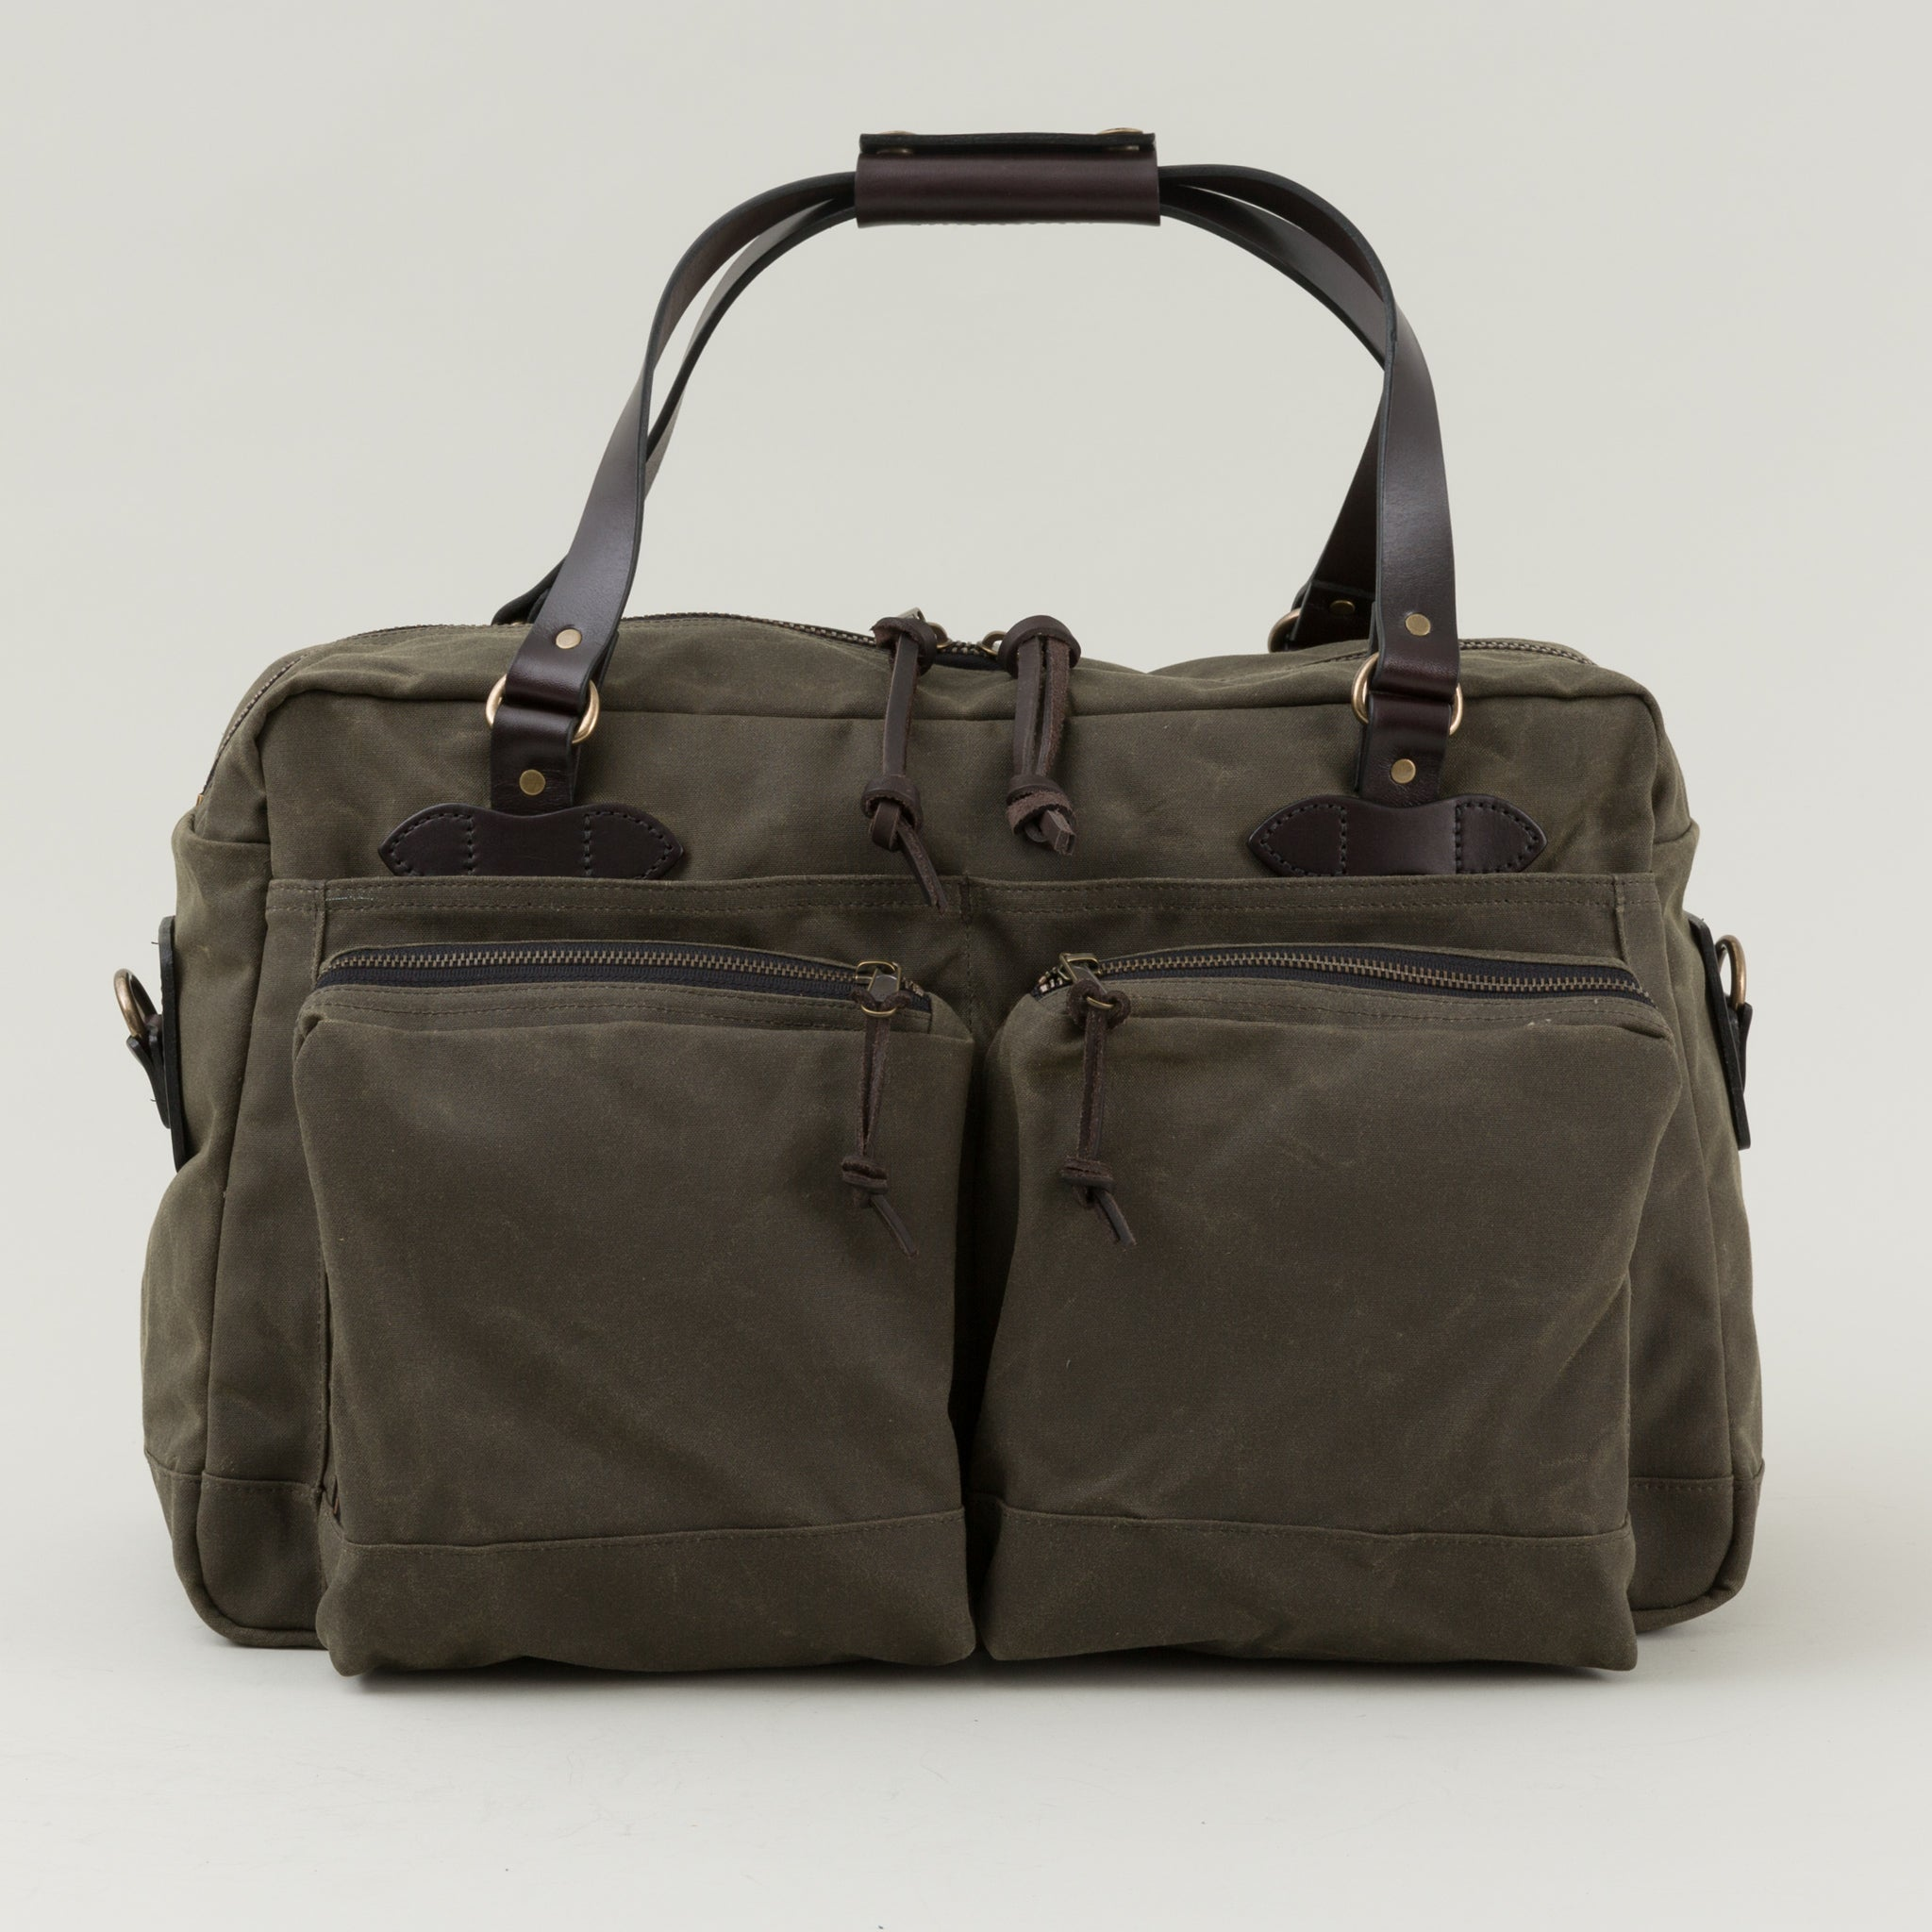 a3744c4478 Filson 48 Hour Tin Cloth Duffle Bag Otter Green Image  1